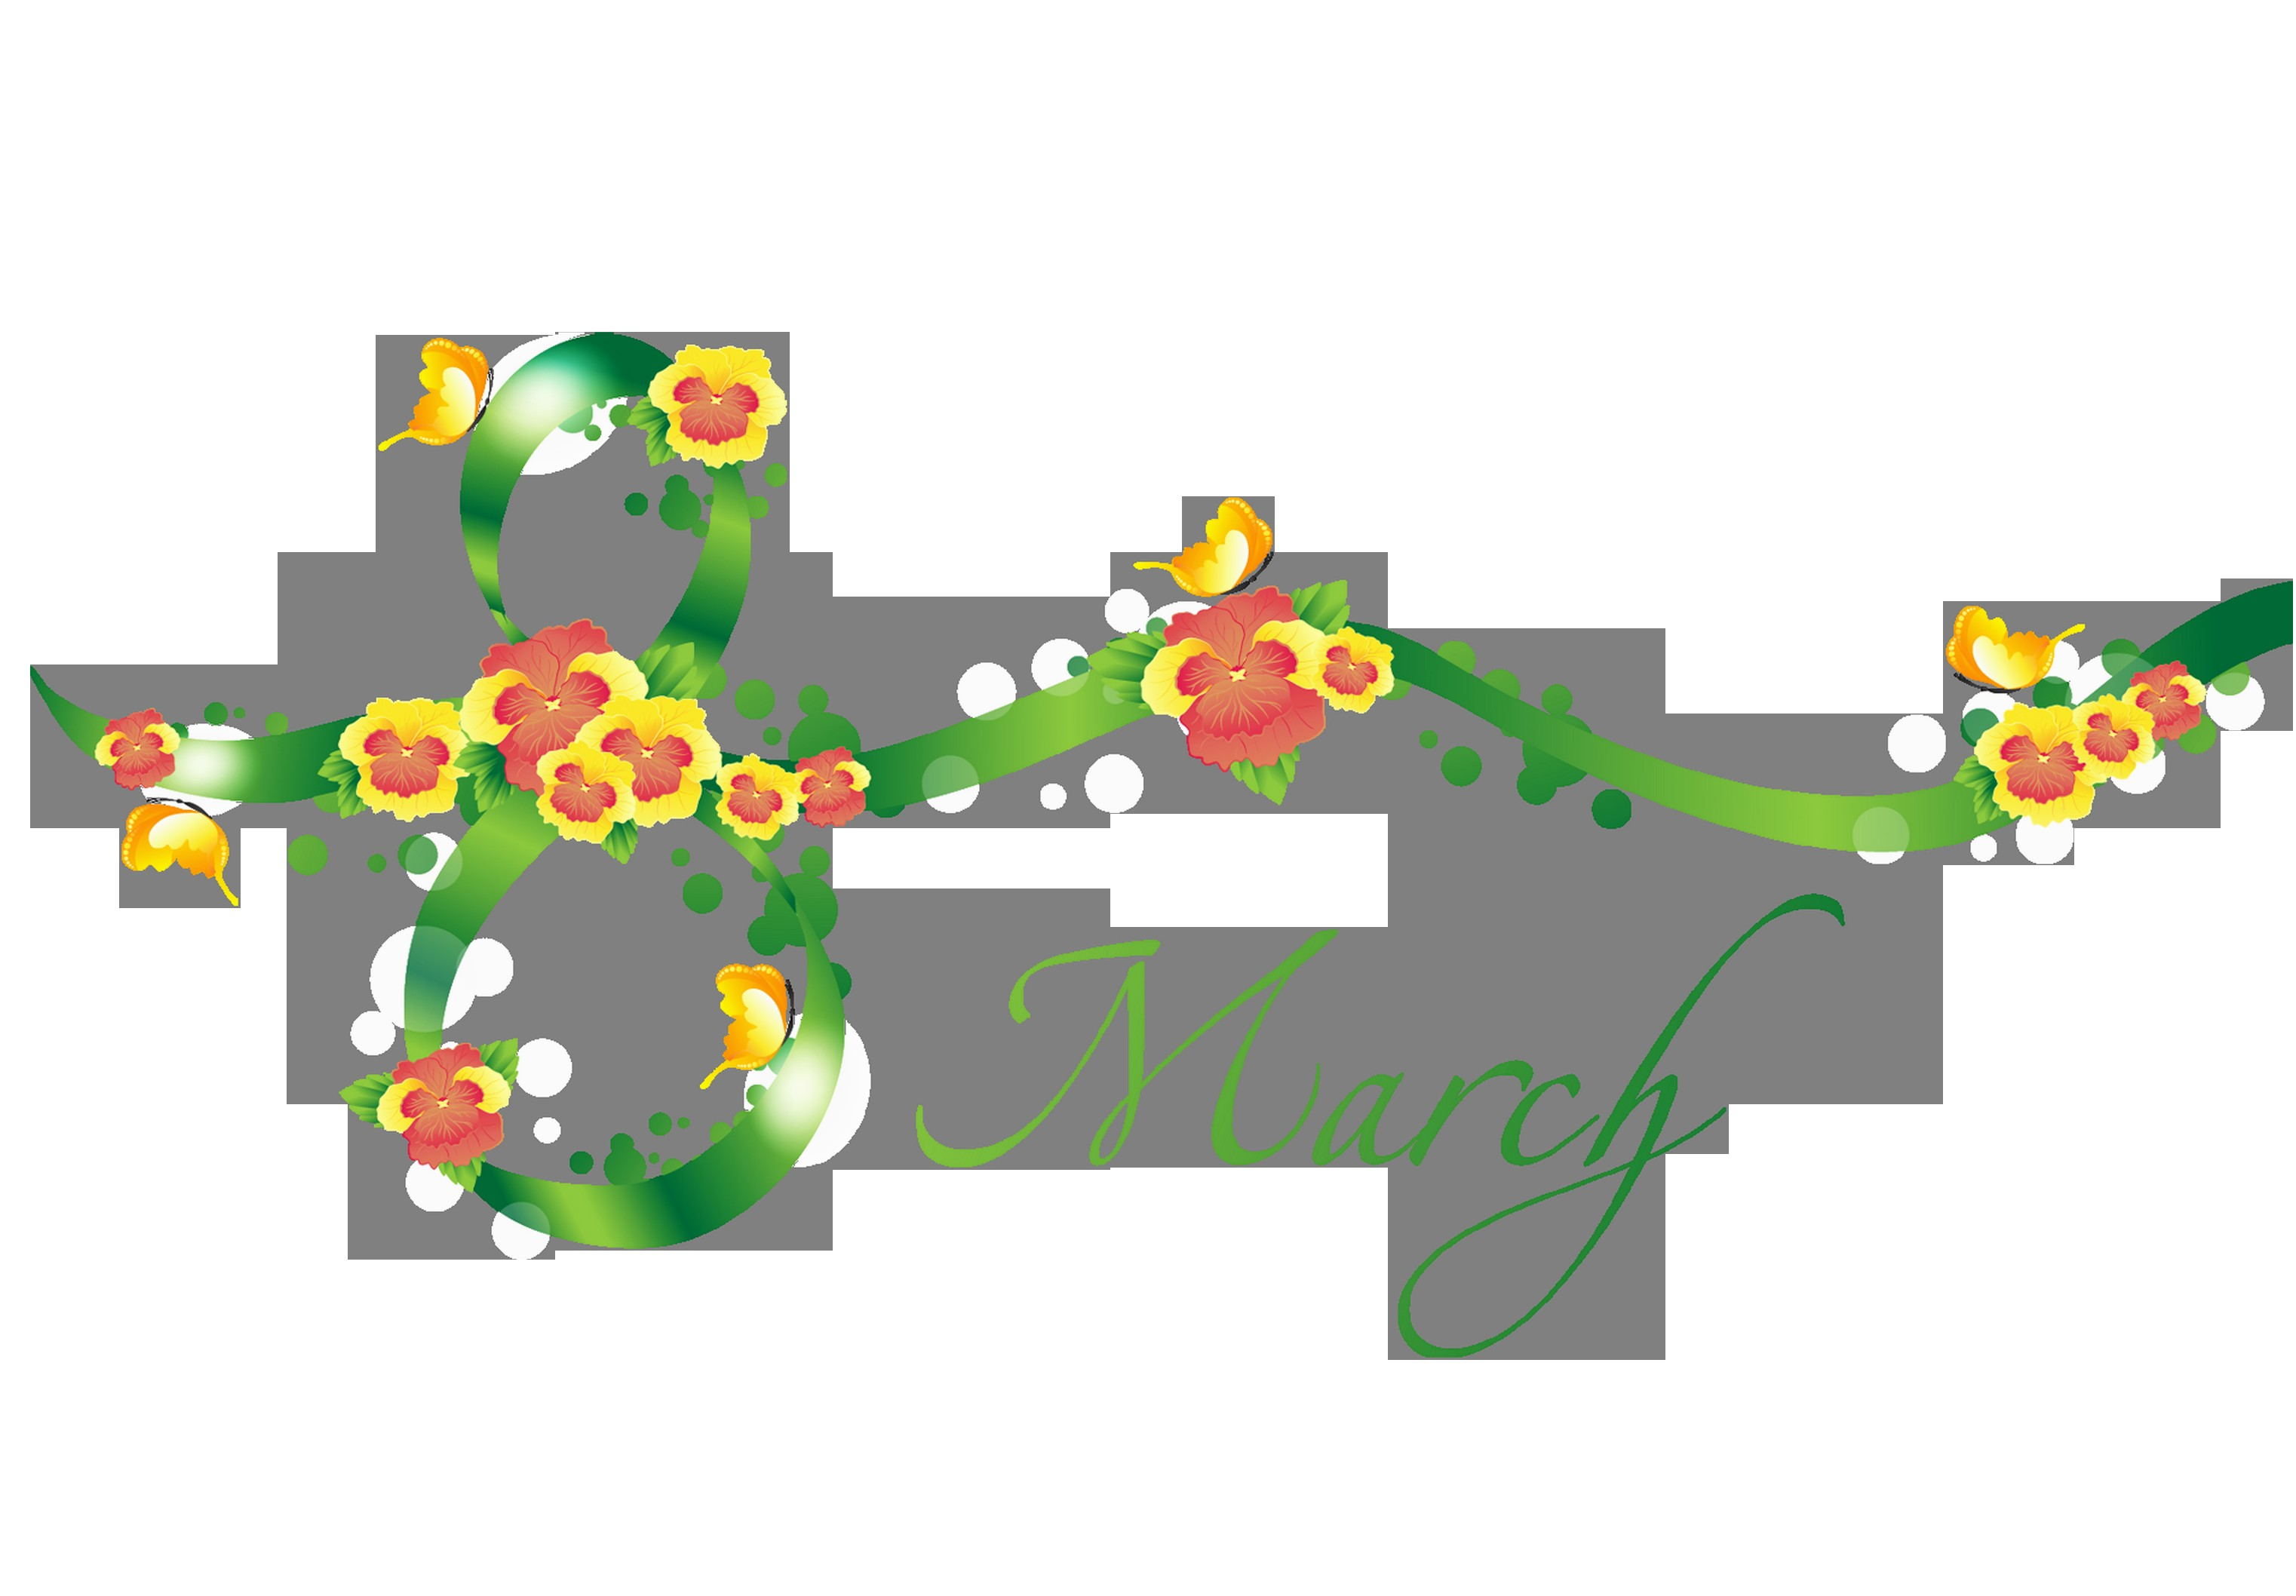 March clipart borders.